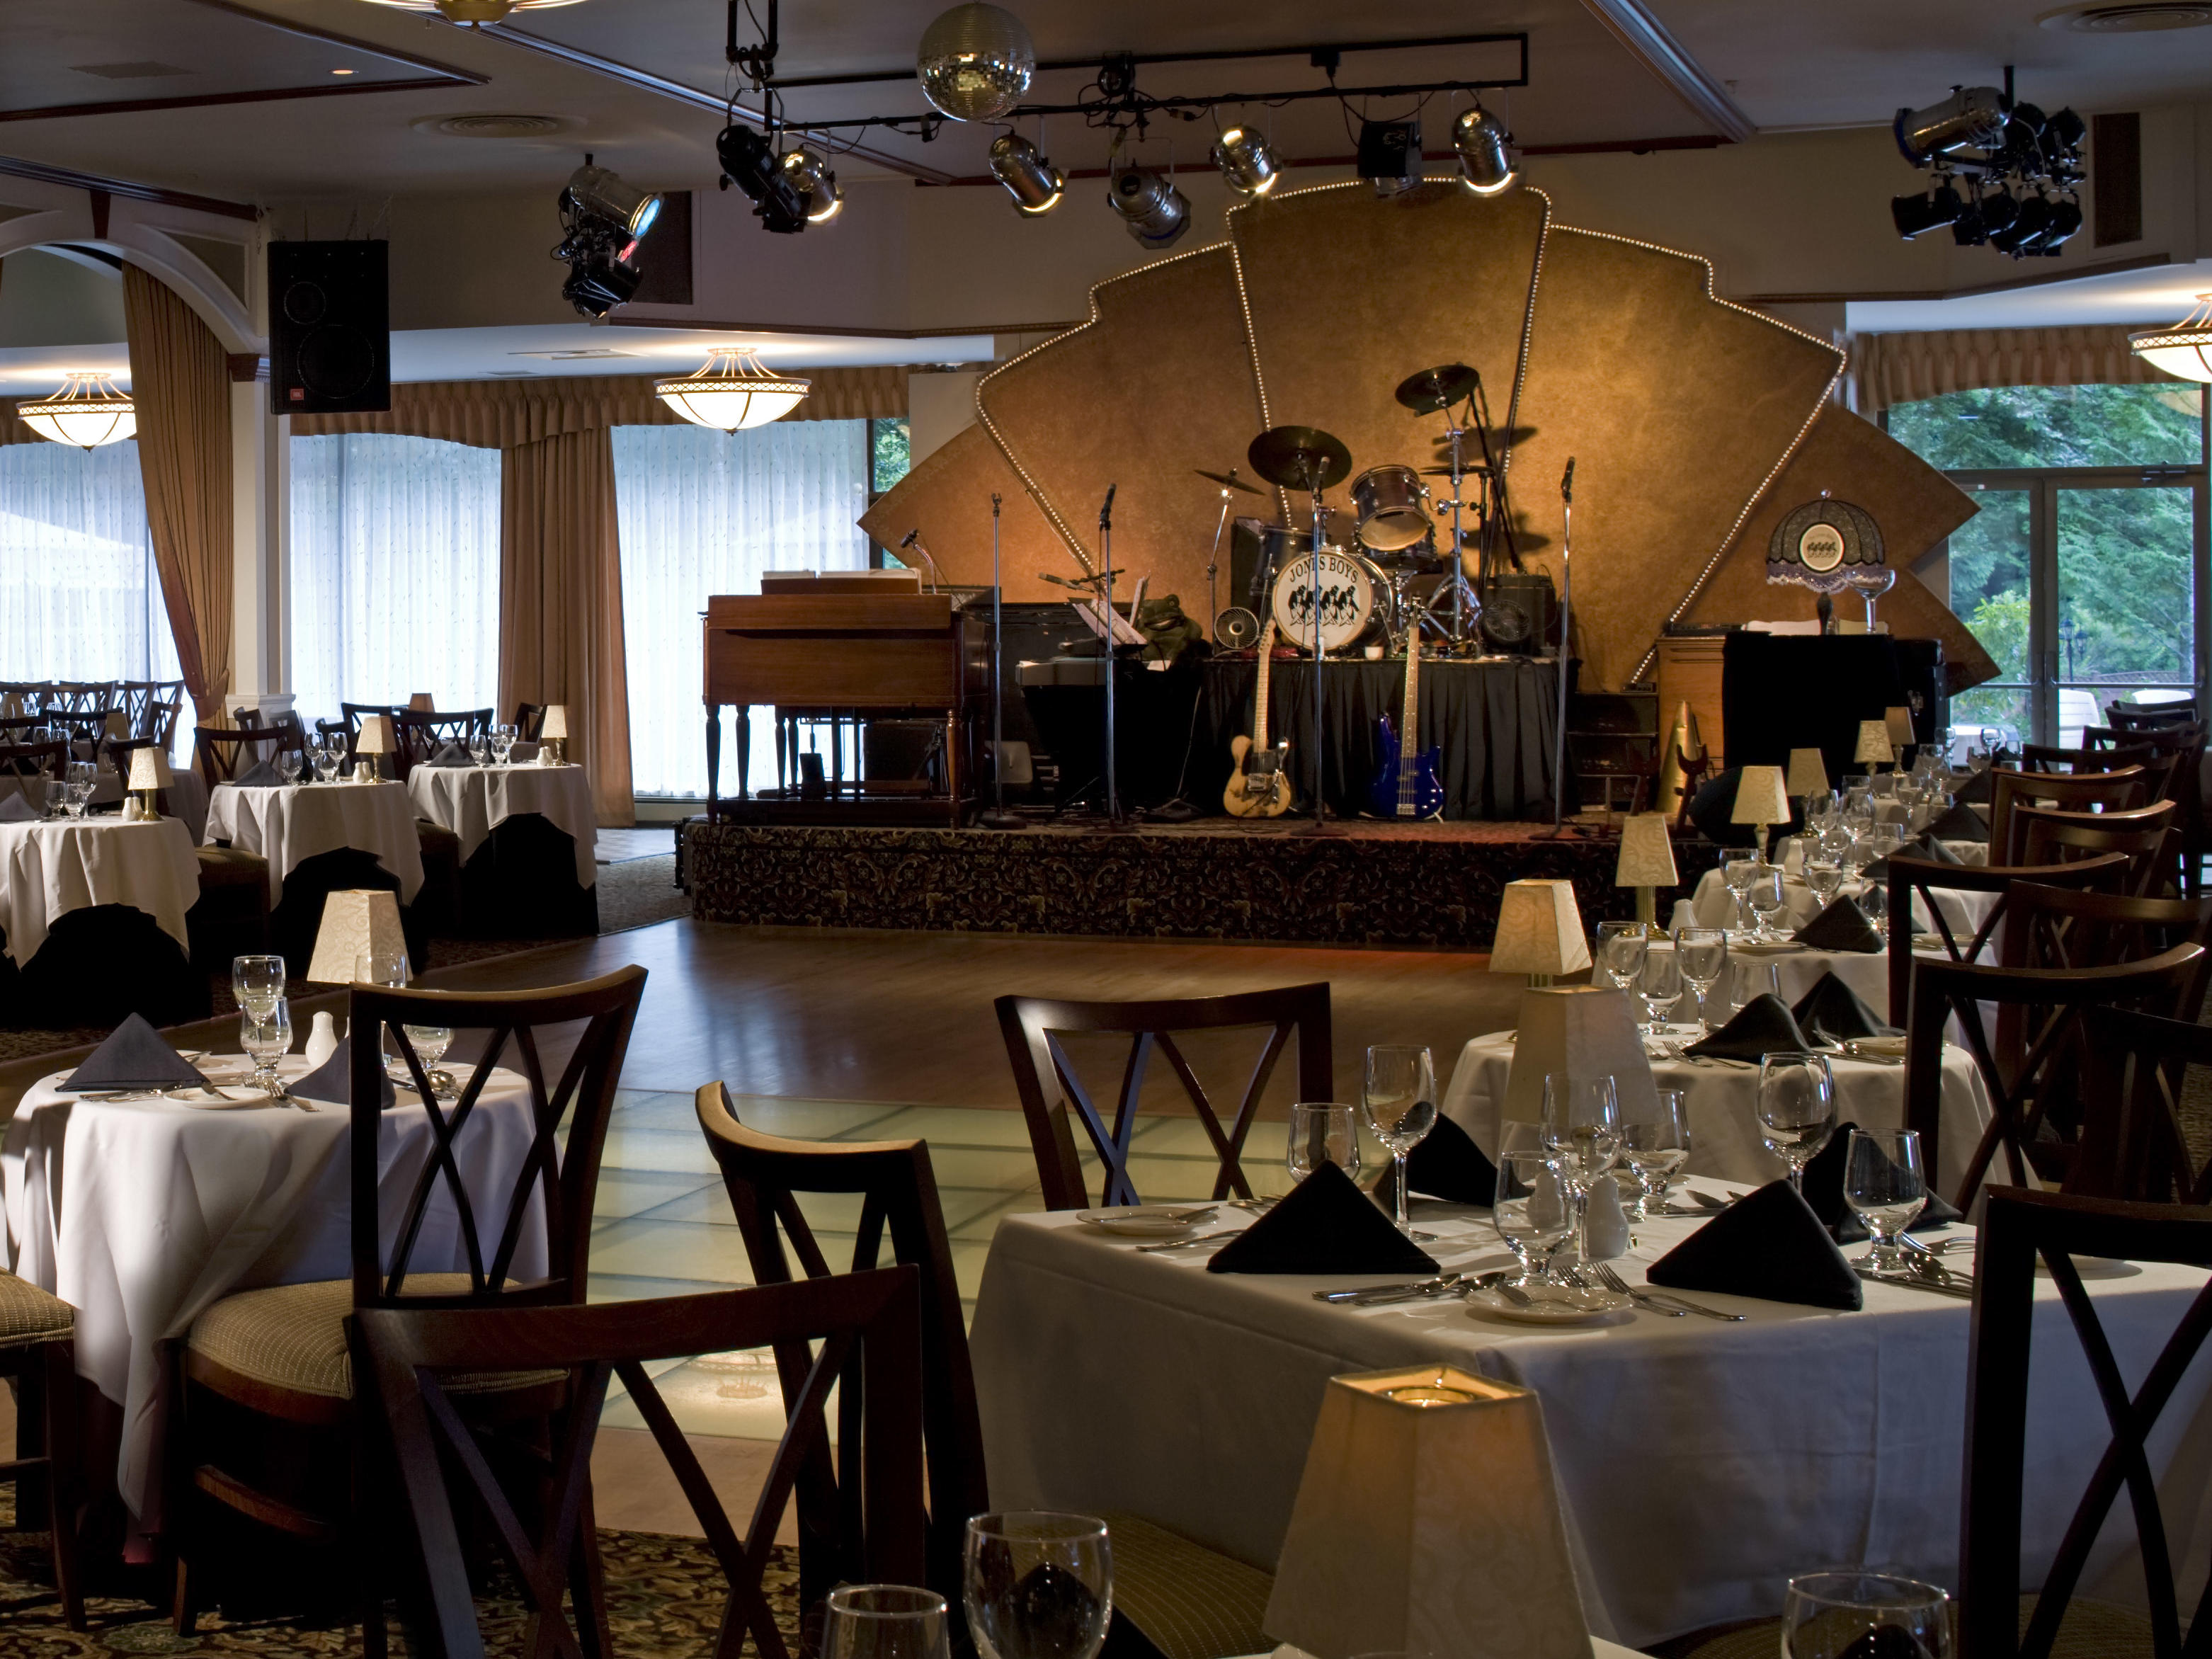 Restaurant seating and small stage.